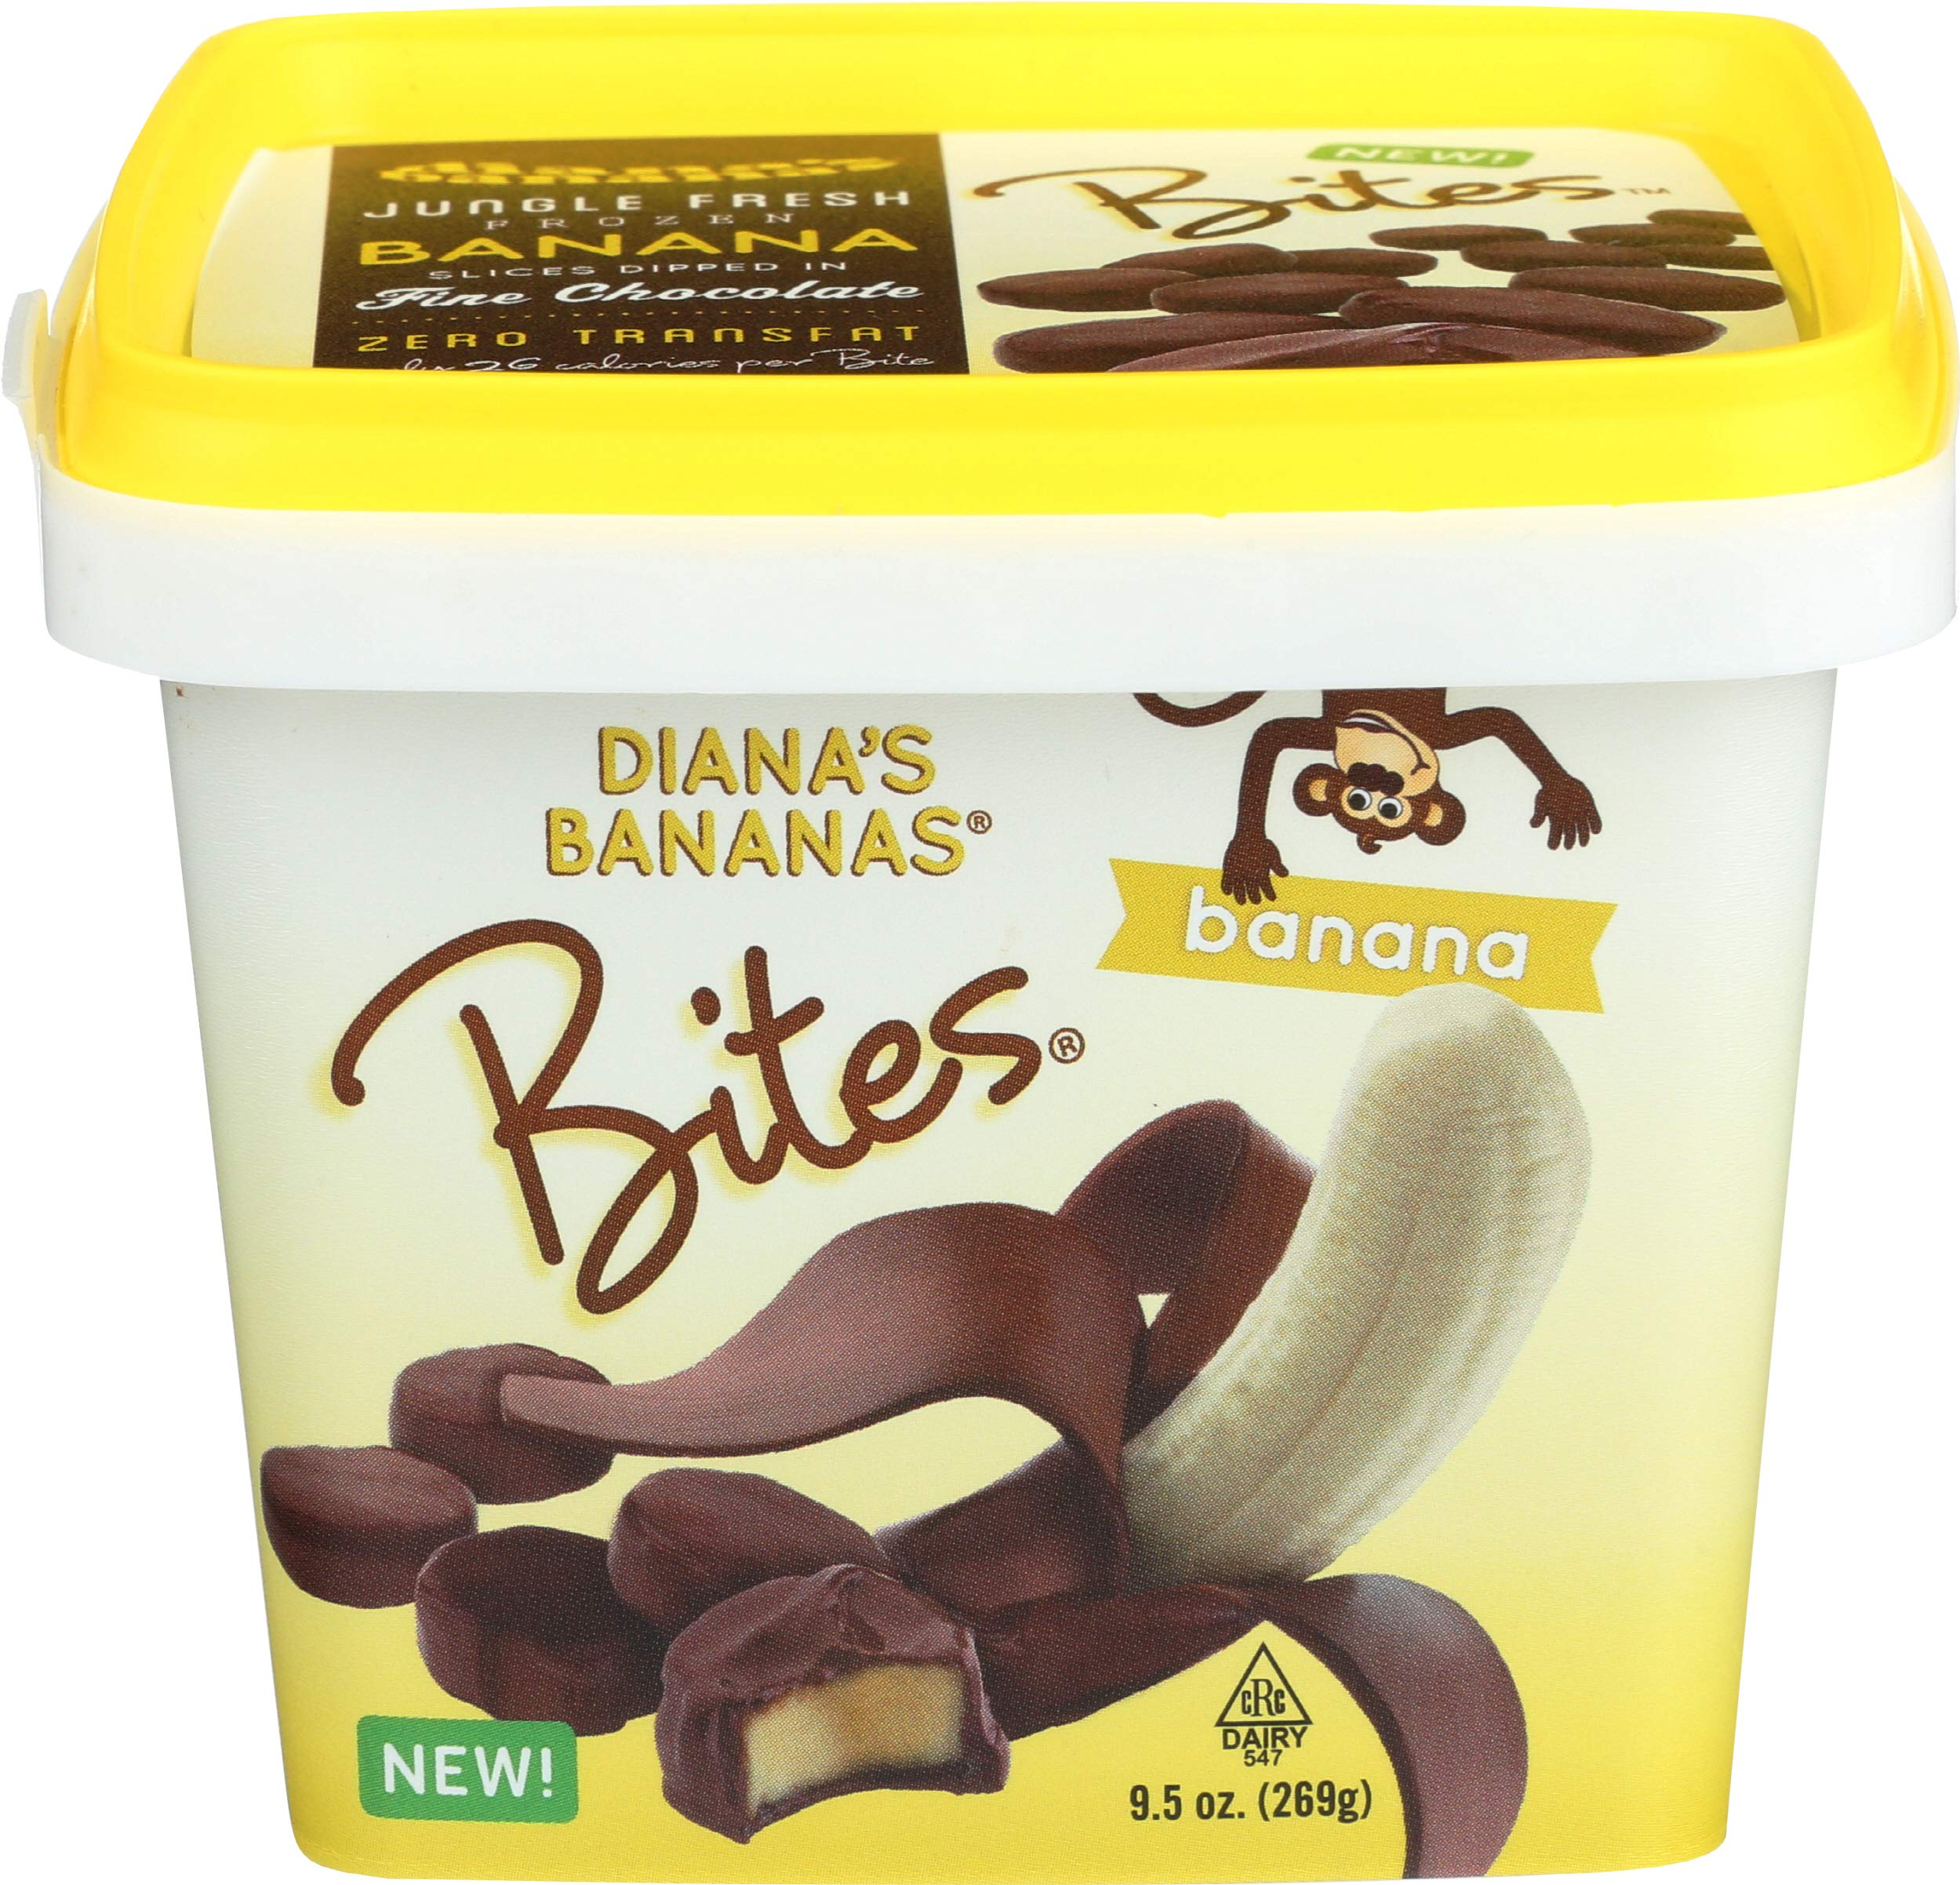 Dianas Bananas, Gluten Free Banana Bites 9.5 Oz, Pack Of 12 by DIANA'S BANANAS